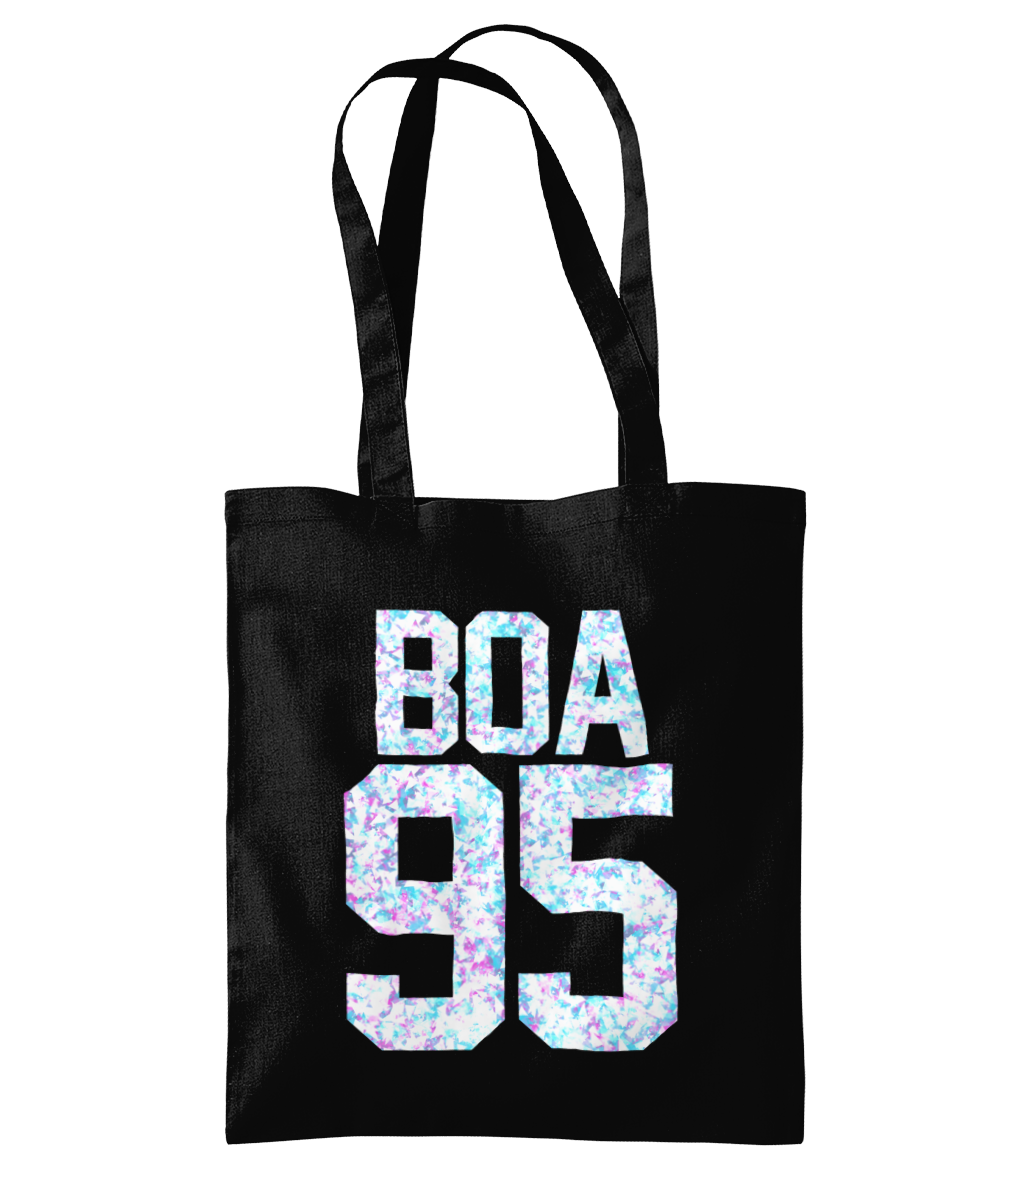 BOA - 95 Tote Bag - SNATCHED MERCH